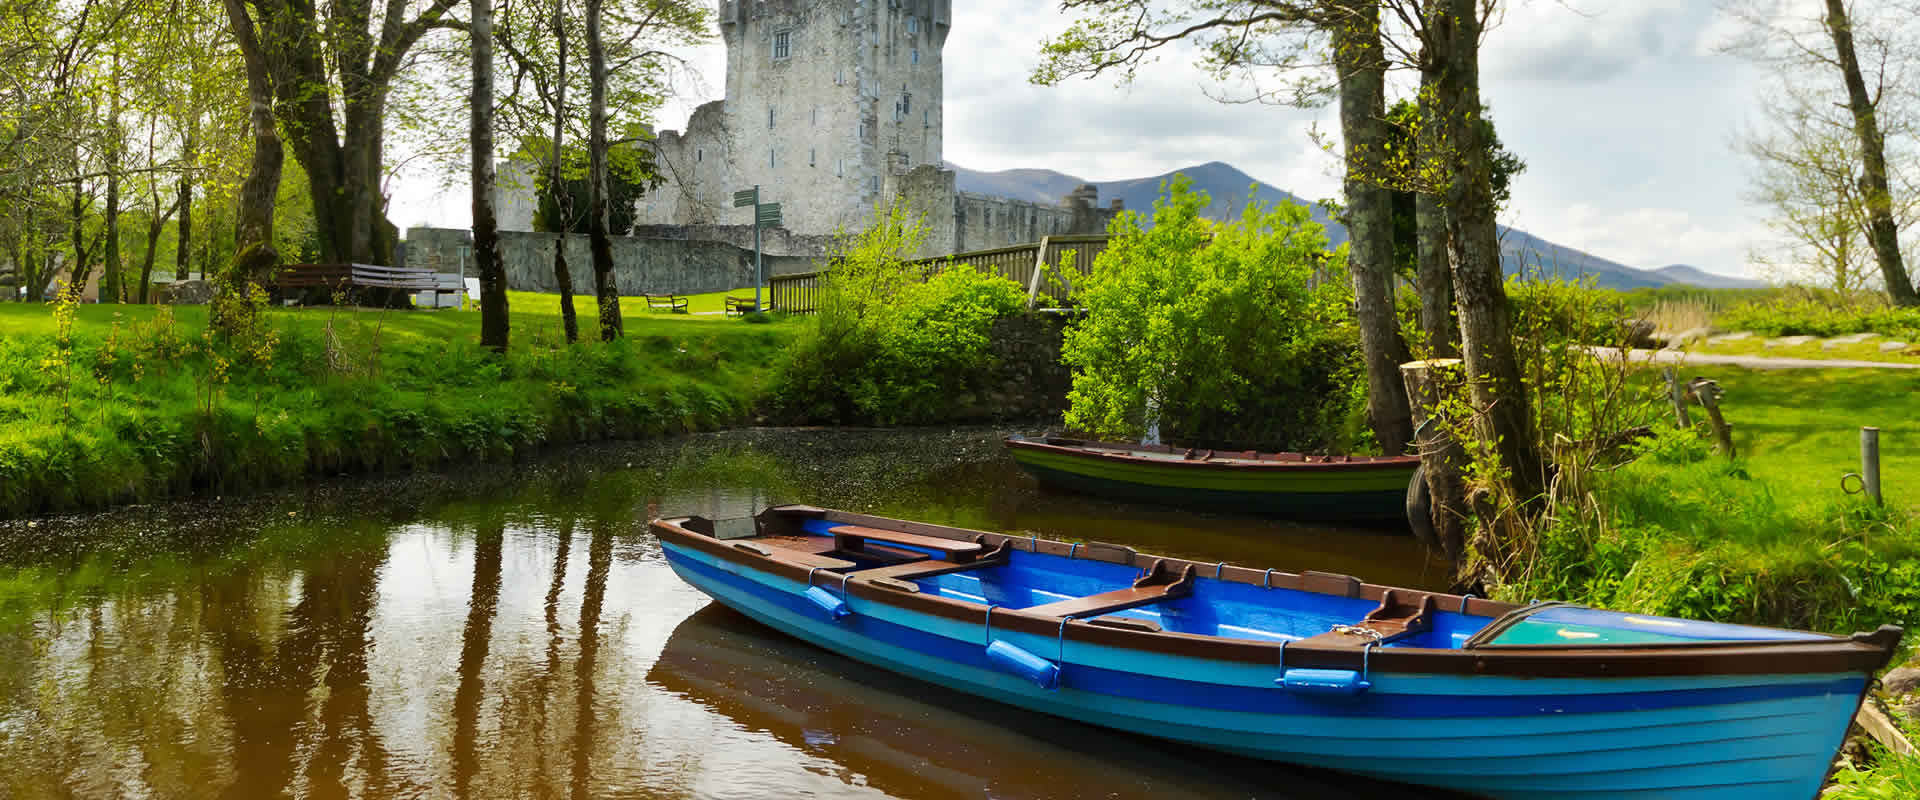 private-tours-ireland-featured.jpg